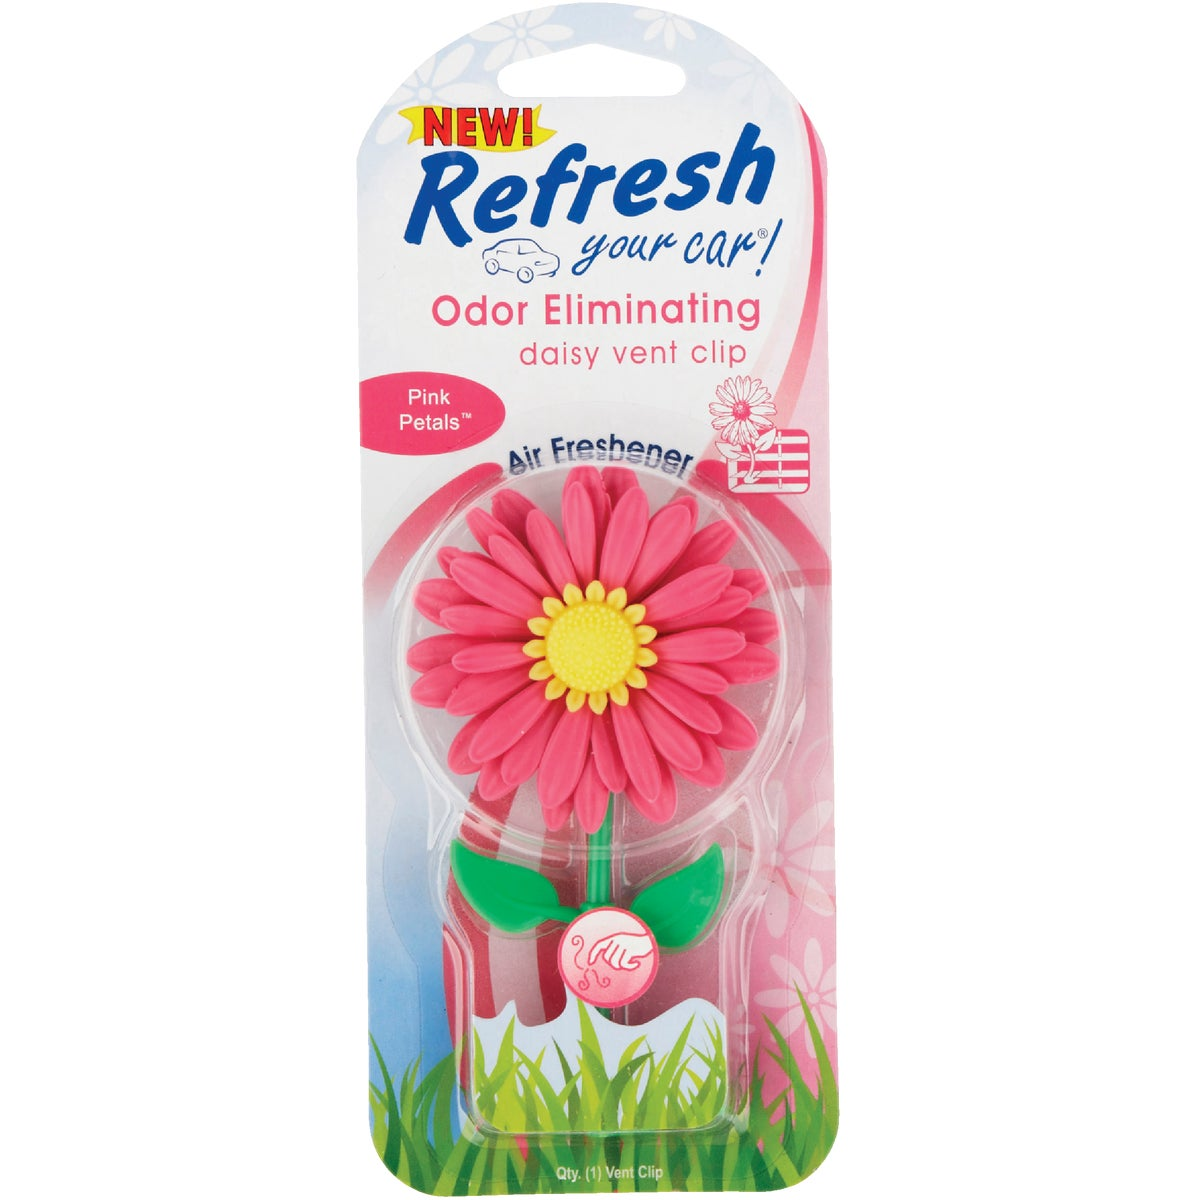 PINK DAISY AIR FRESHENER - 09312 by HandStands